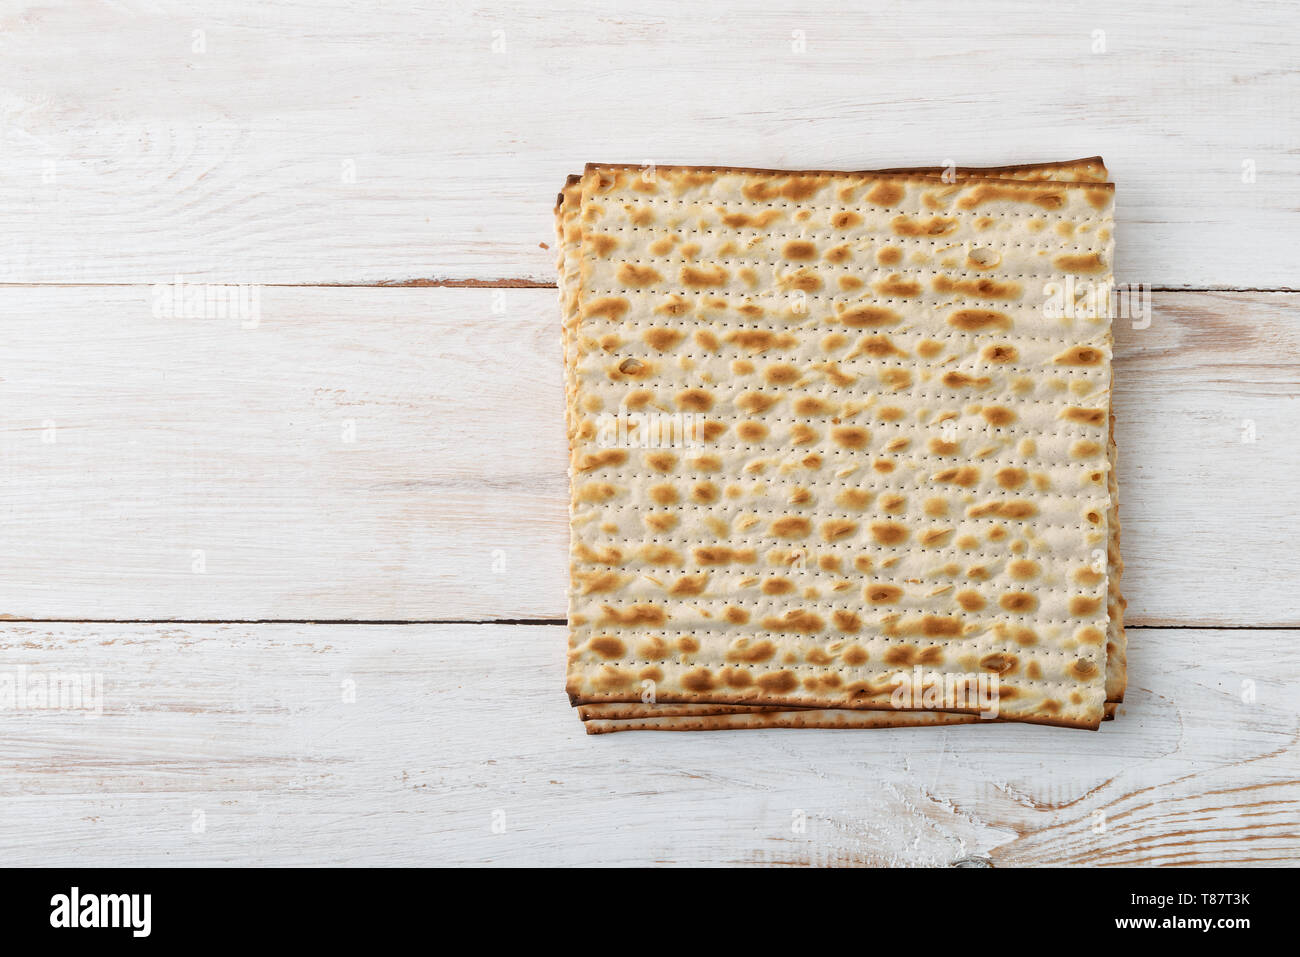 Top view of flatbread matzo on wooden background - Stock Image